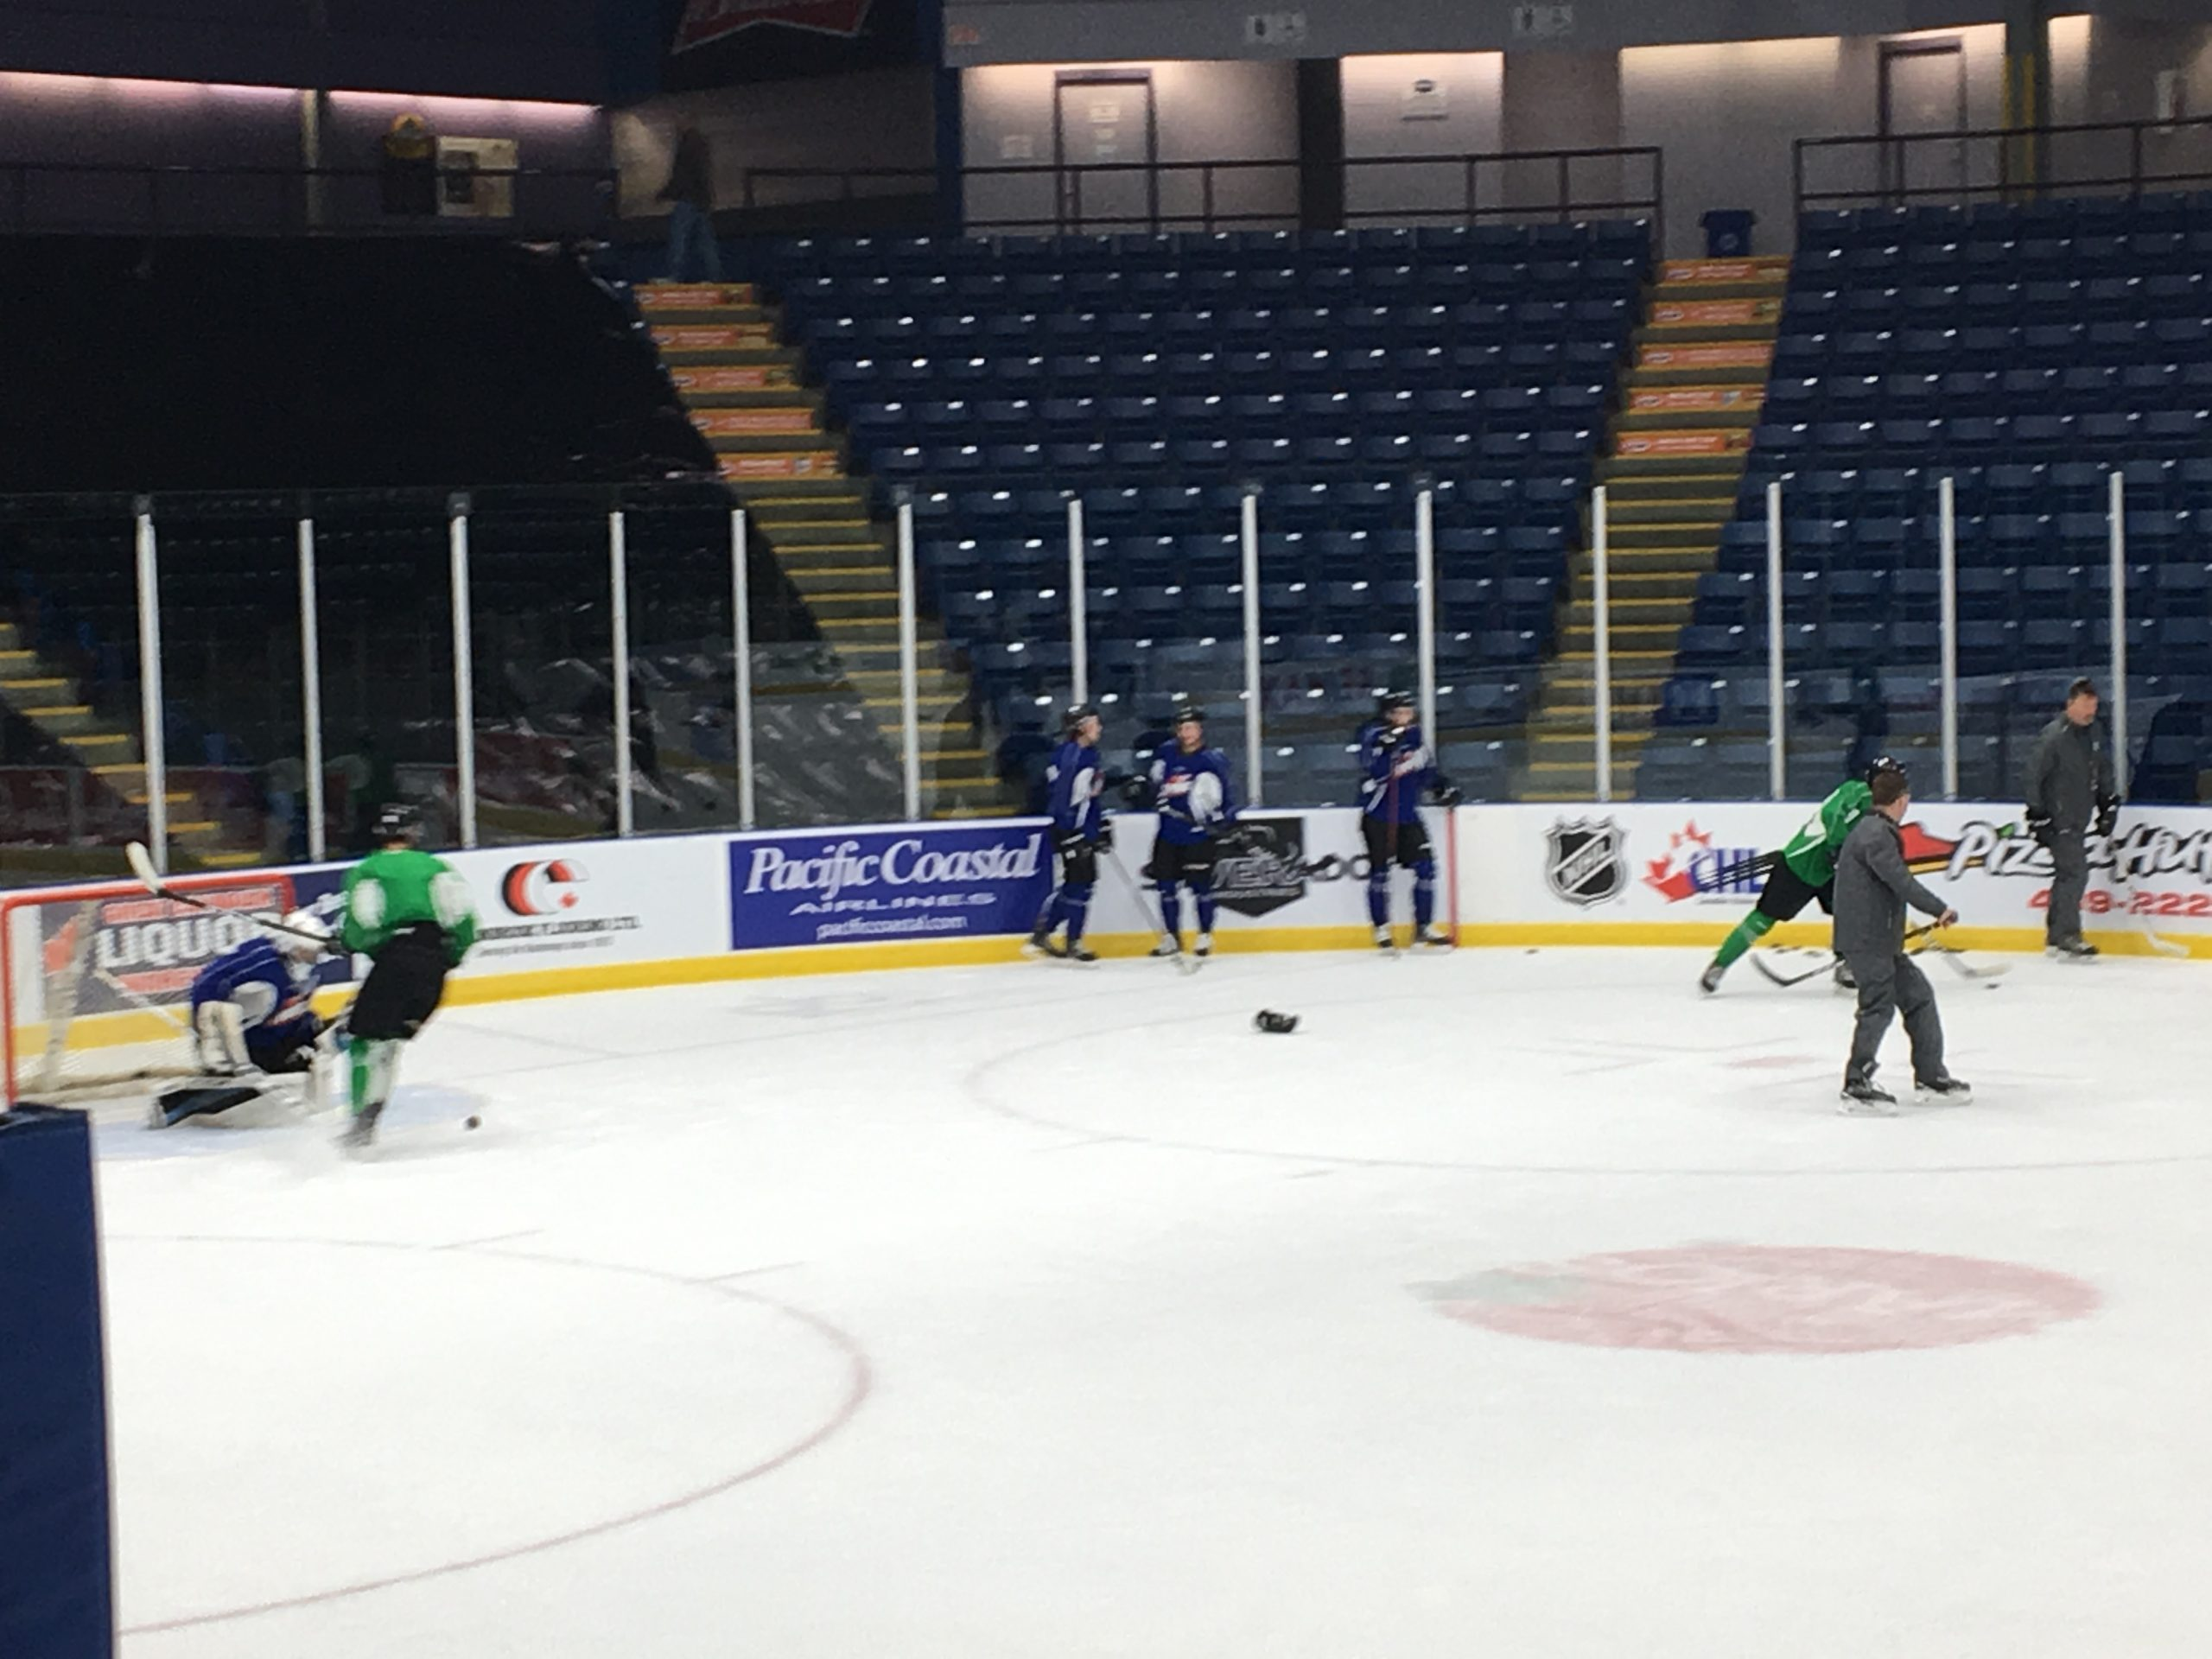 Kootenay ICE coach aims for strong start in tomorrow's opener